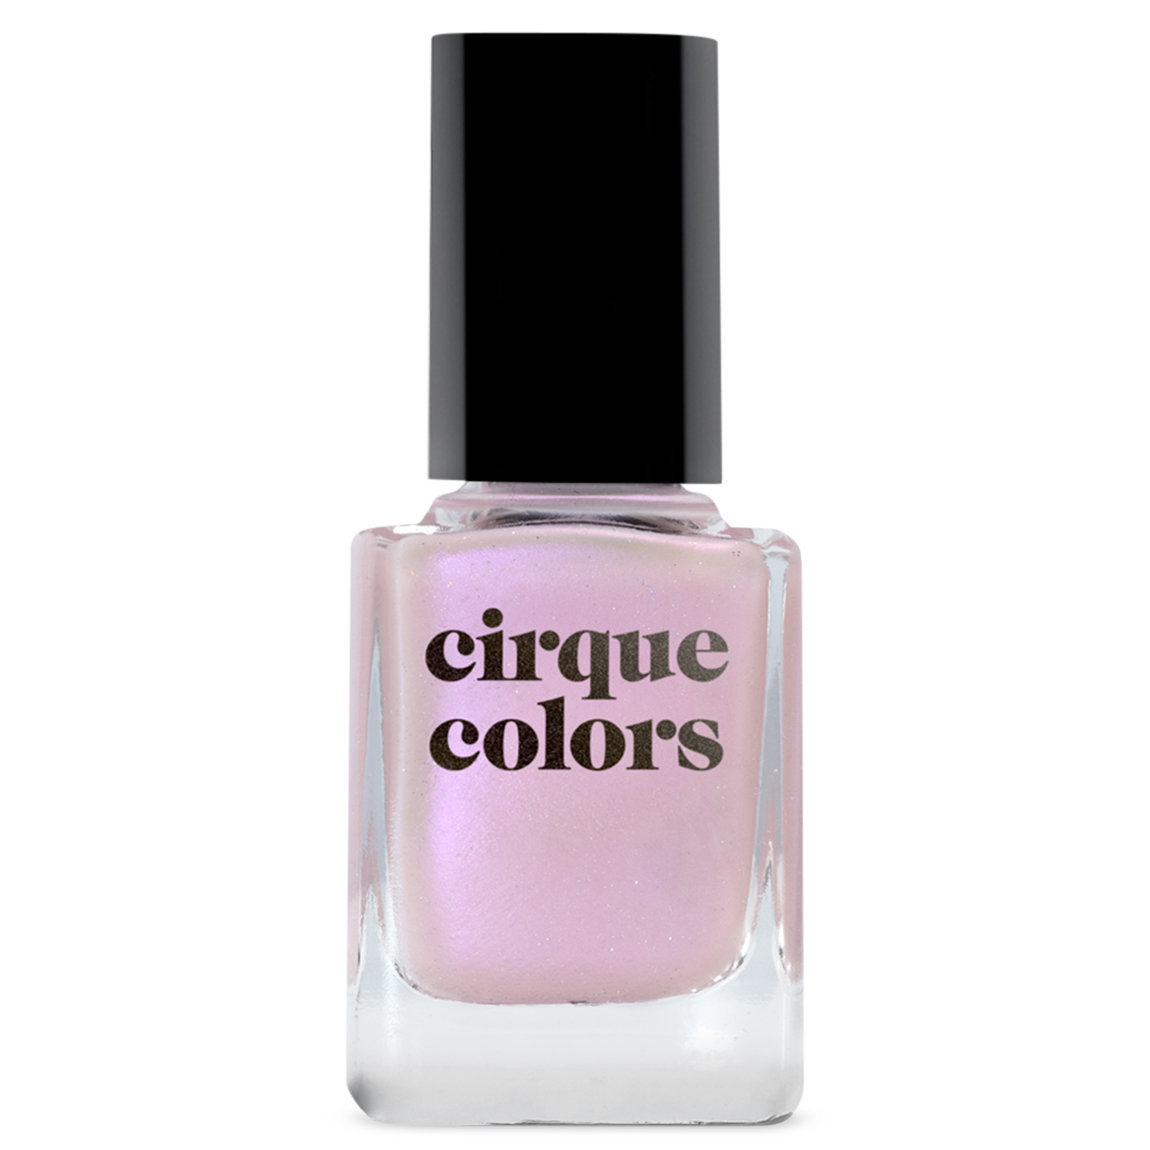 Cirque Colors Shimmer Nail Polish Ghost Rose alternative view 1.